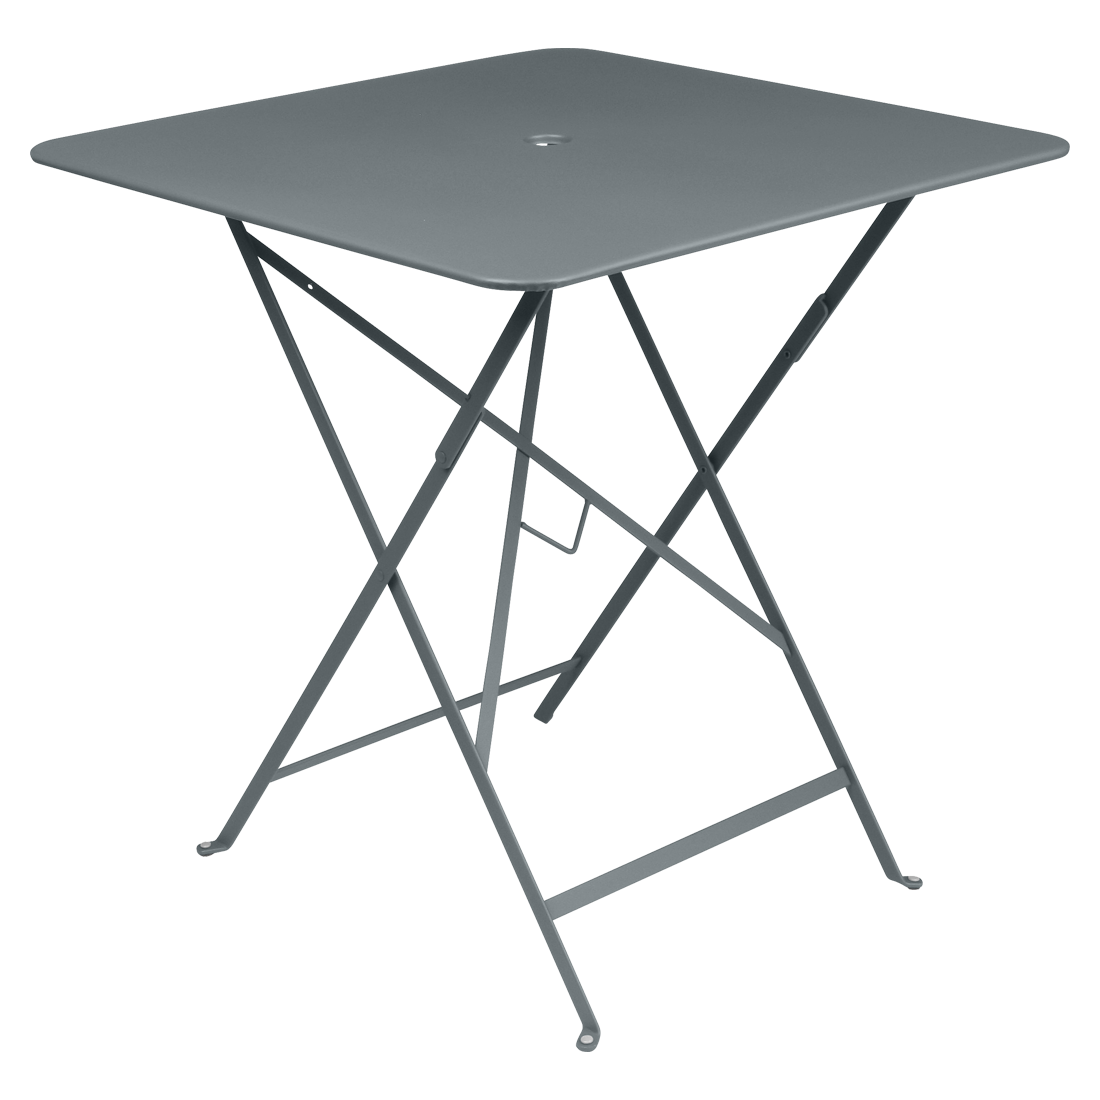 FERMOB Bistro Square 2-4 Seater Table (2 Sizes)